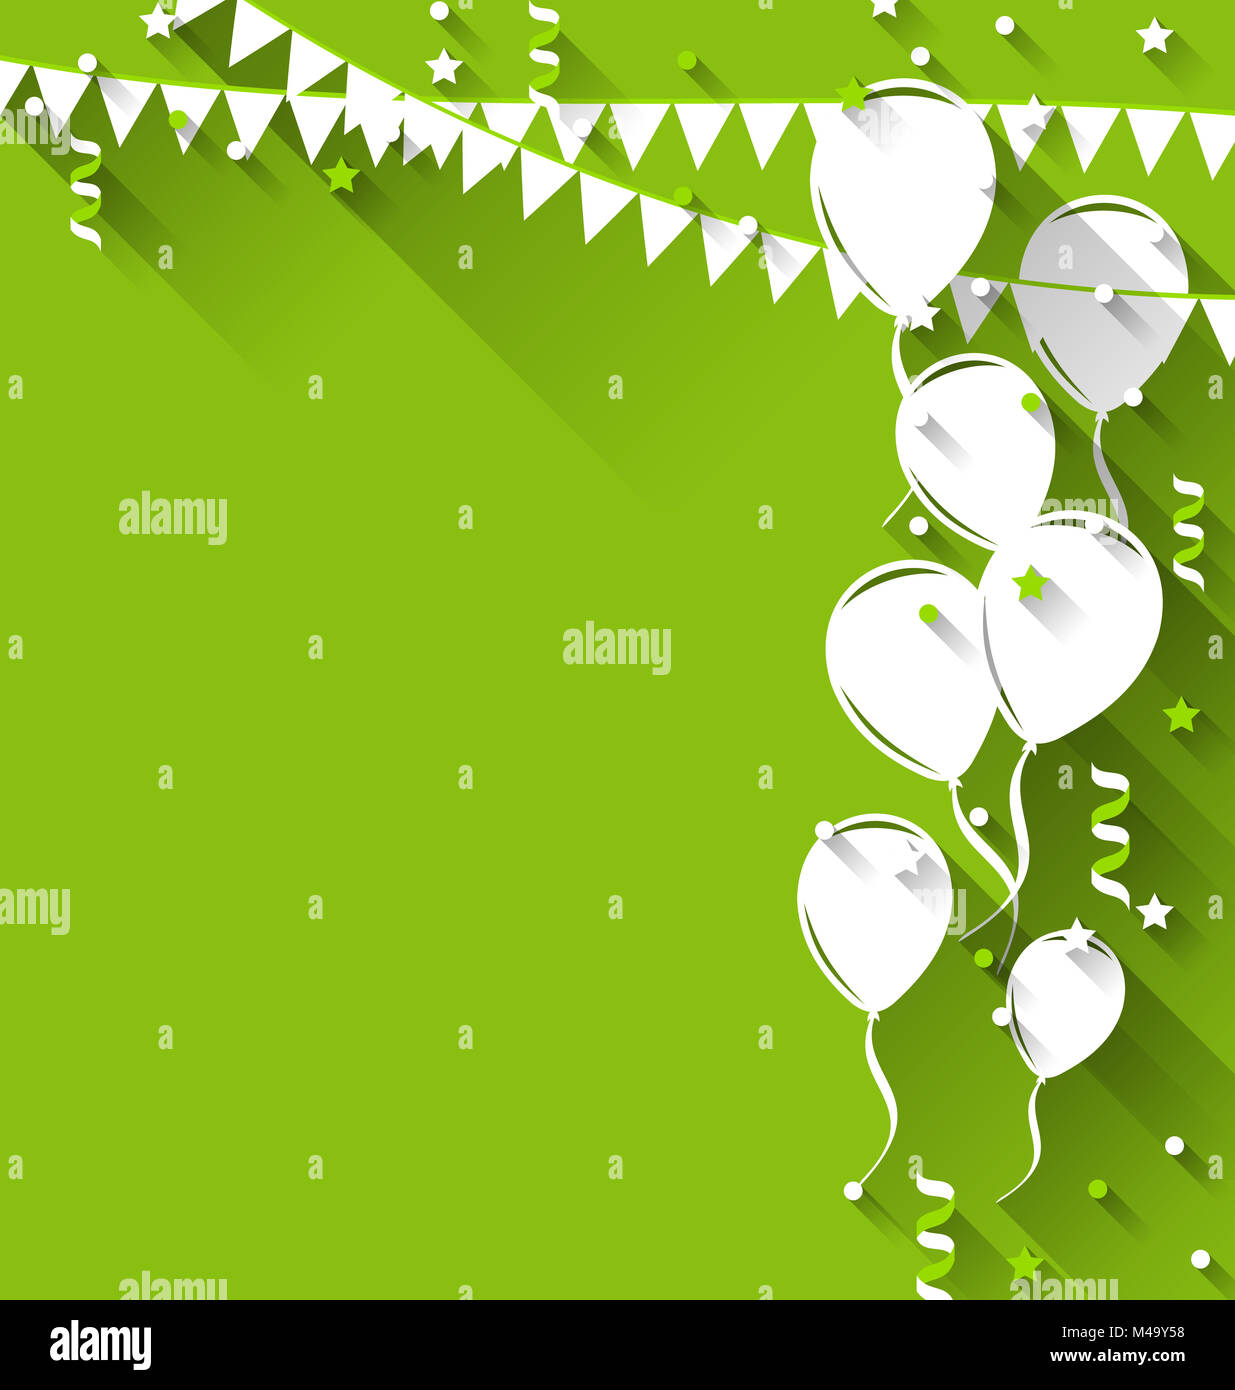 Happy birthday background with balloons and hanging pennants, tr - Stock Image